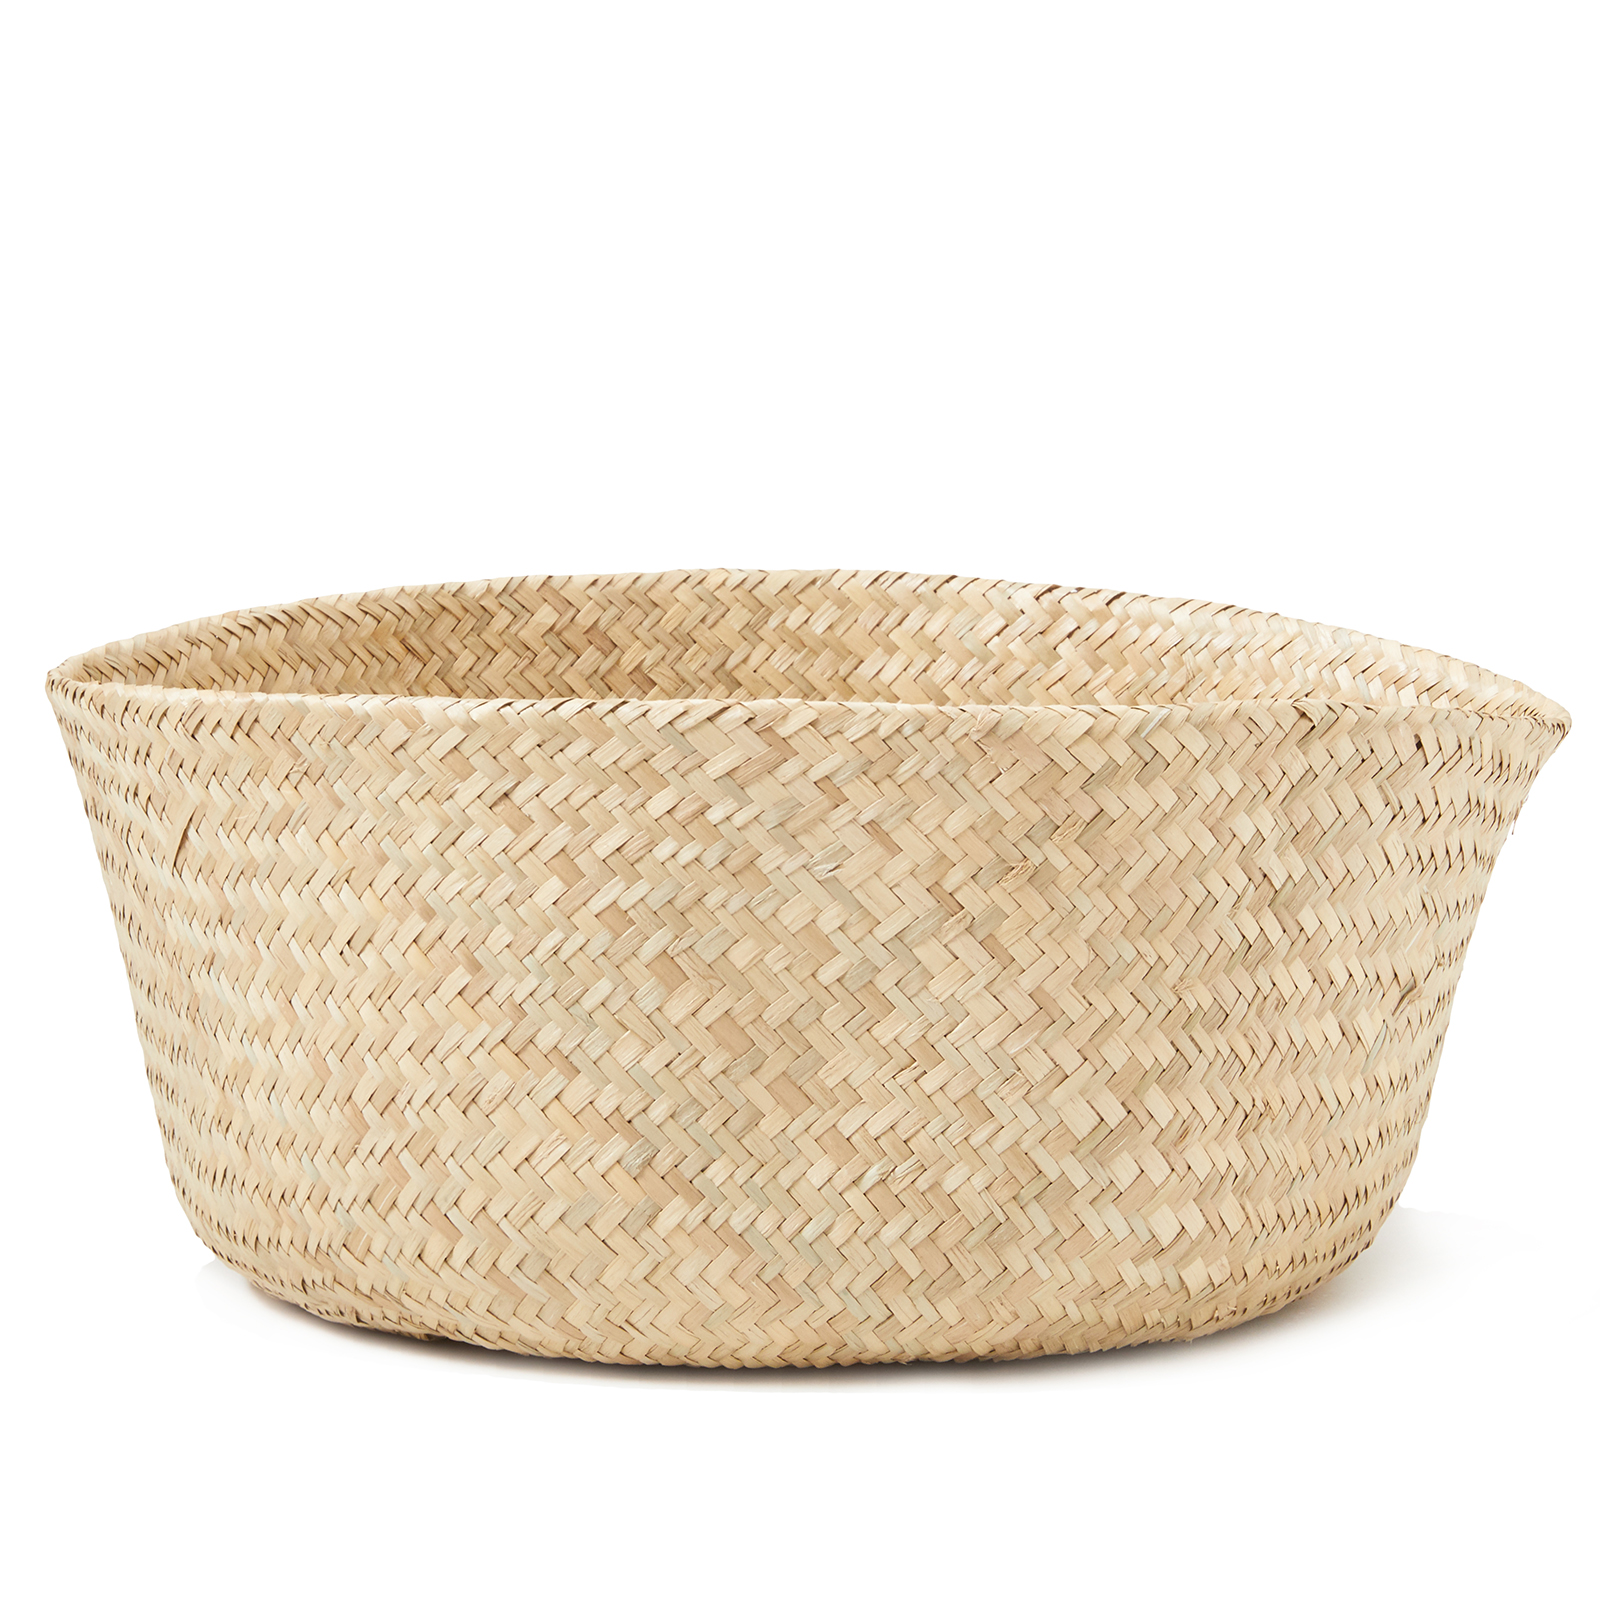 miniature 8 - Hand-Woven Palm and Seagrass Belly Baskets for Storage and Organization